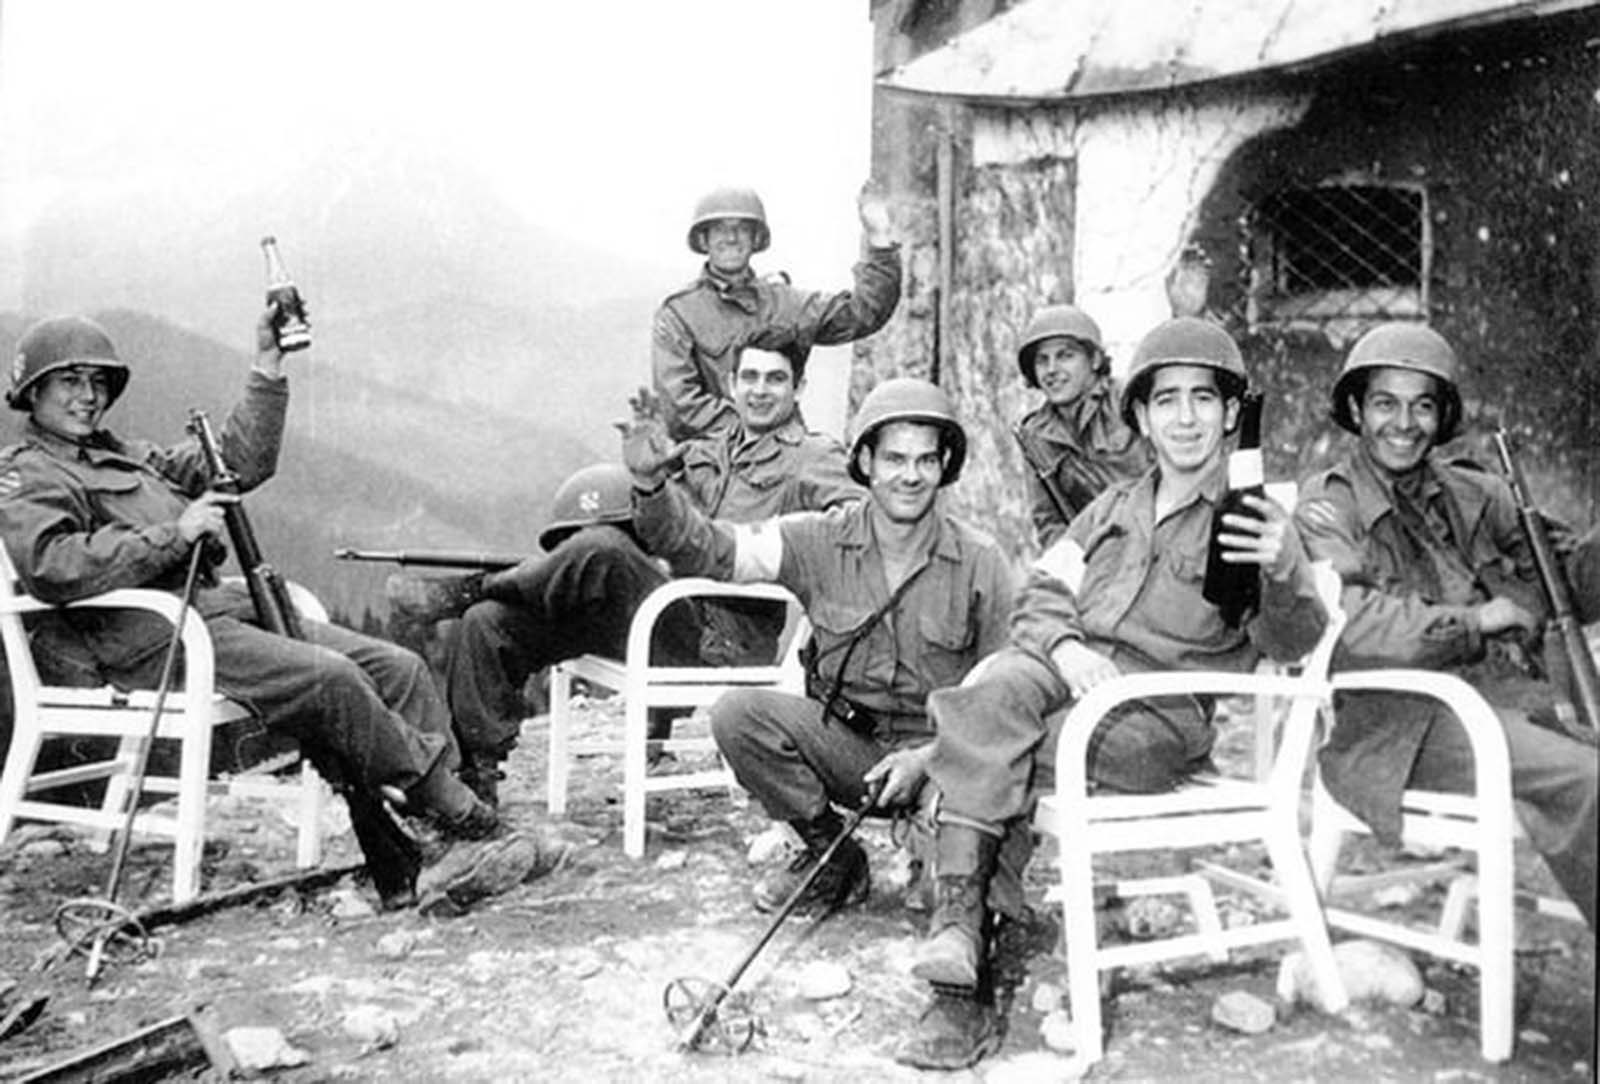 The 7th Infantry Regiment attached to the 3rd Infantry Division drink Hitler's wine on the patio of the Berghof, below the Eagle's Nest.